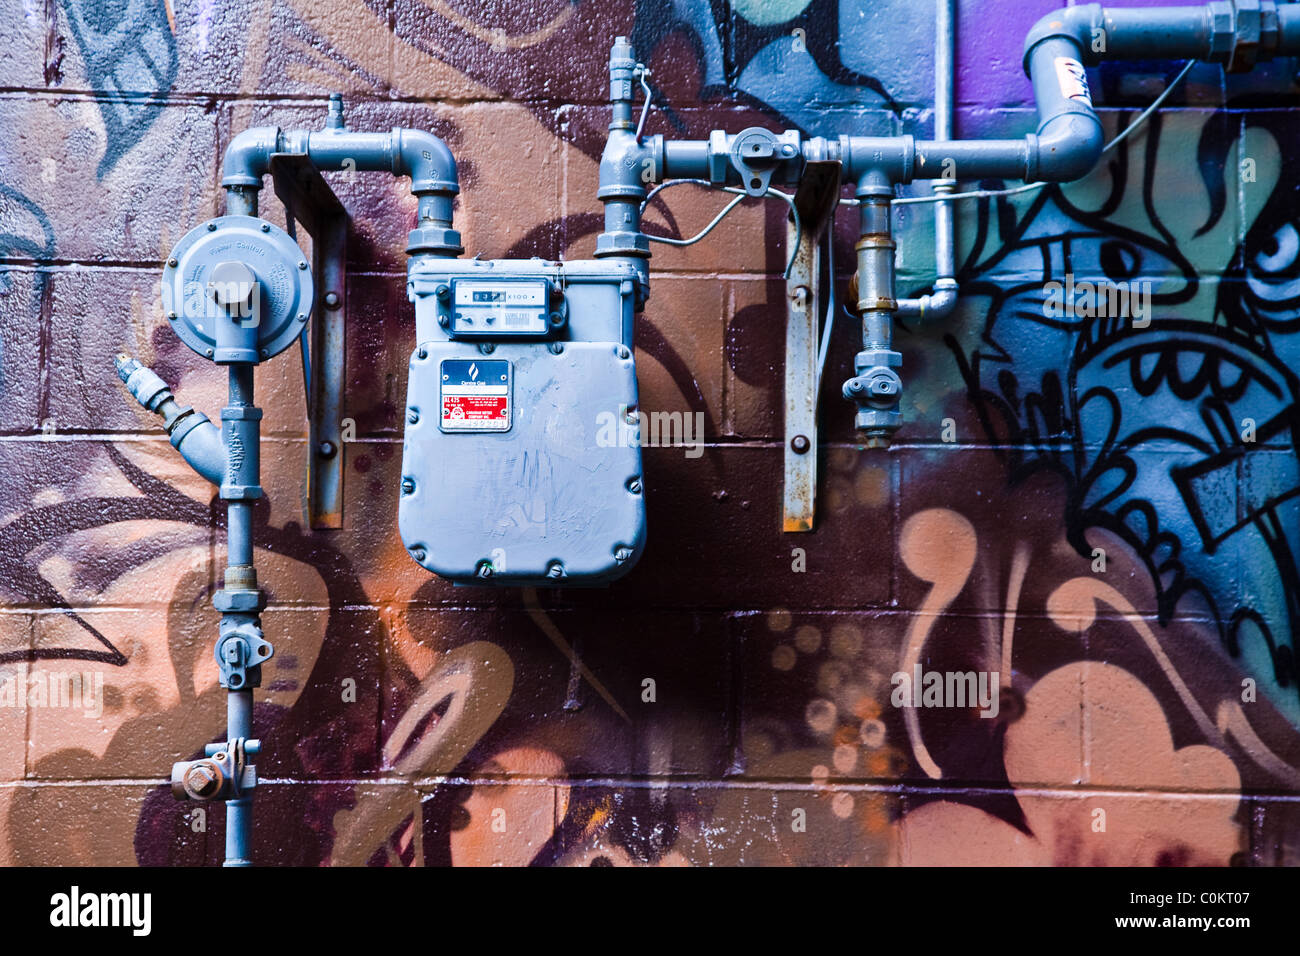 A gas meter and piping against a colorful wall - Stock Image